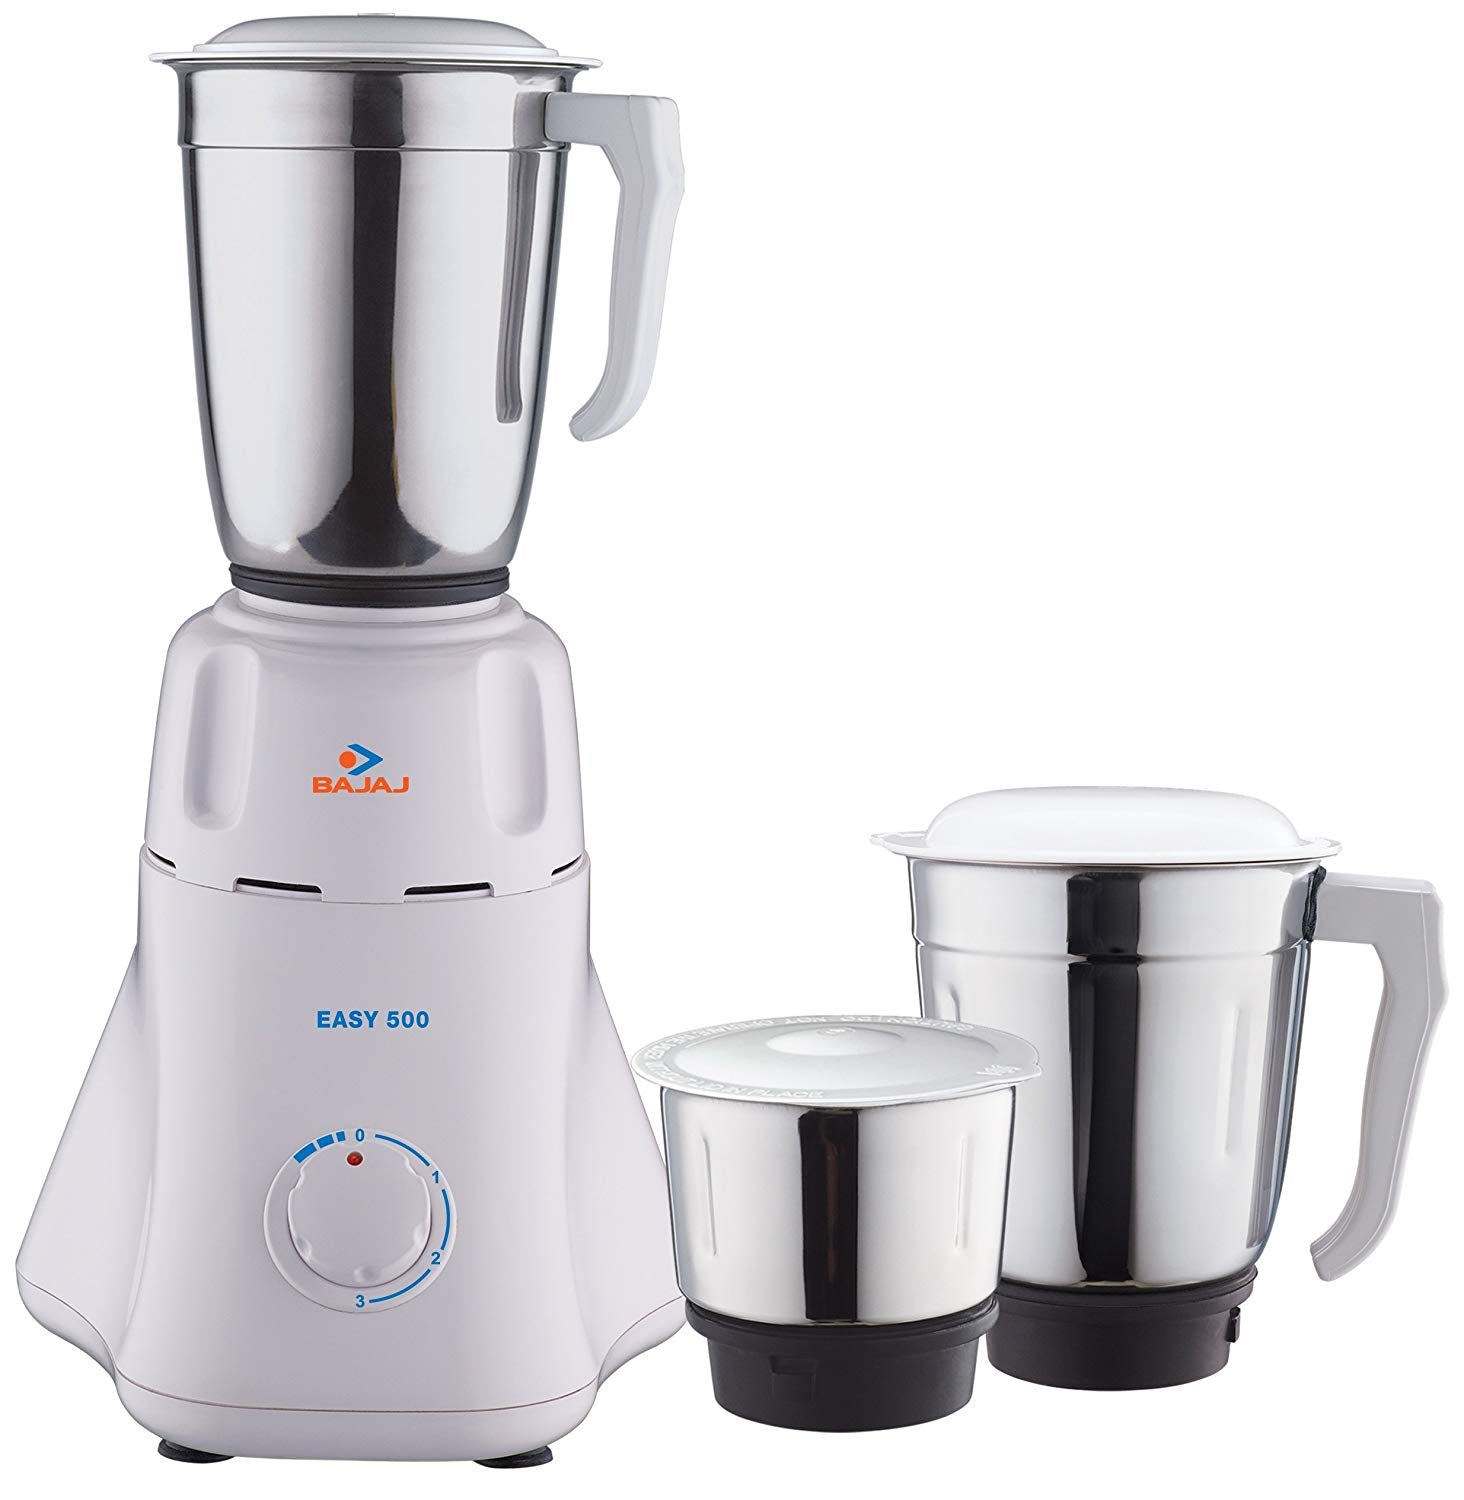 Bajaj 500-Watt Easy Mixer grinderget best offers deals free and coupons online at buythevalue.in